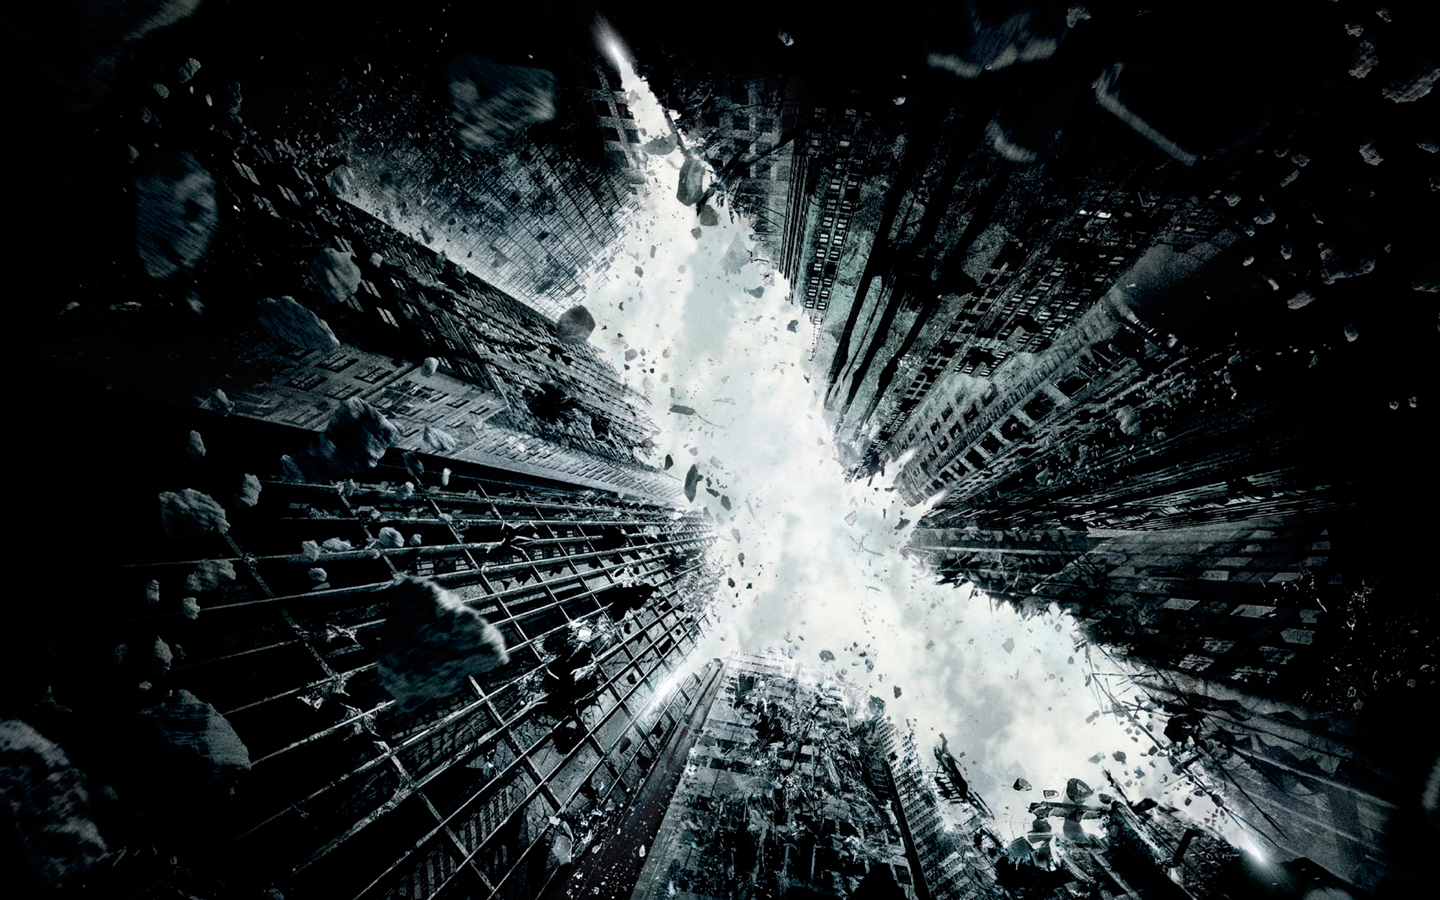 dark knight rises essay A comparison between the dark knight movie and good country people - essay the dark knight rises on topic a comparison between the dark knight movie and.